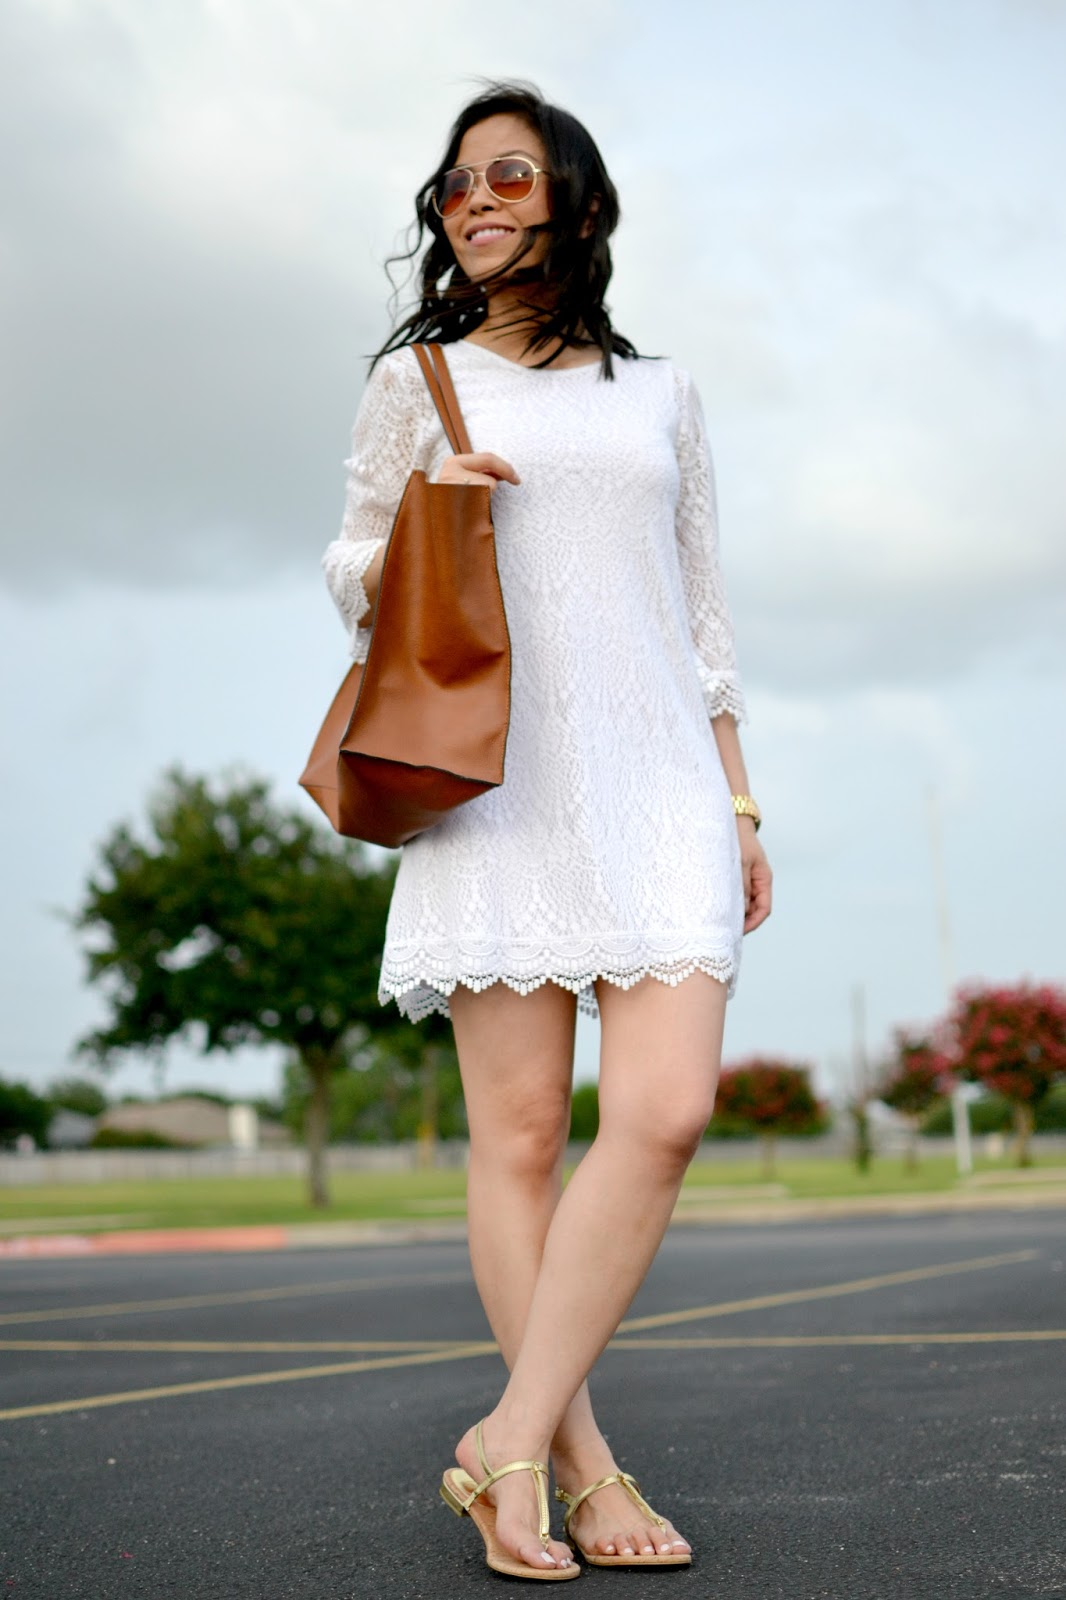 6645fccf2cb3af Style and Cappuccino   Summer Lace  White Lace Dress   Gold Sandals